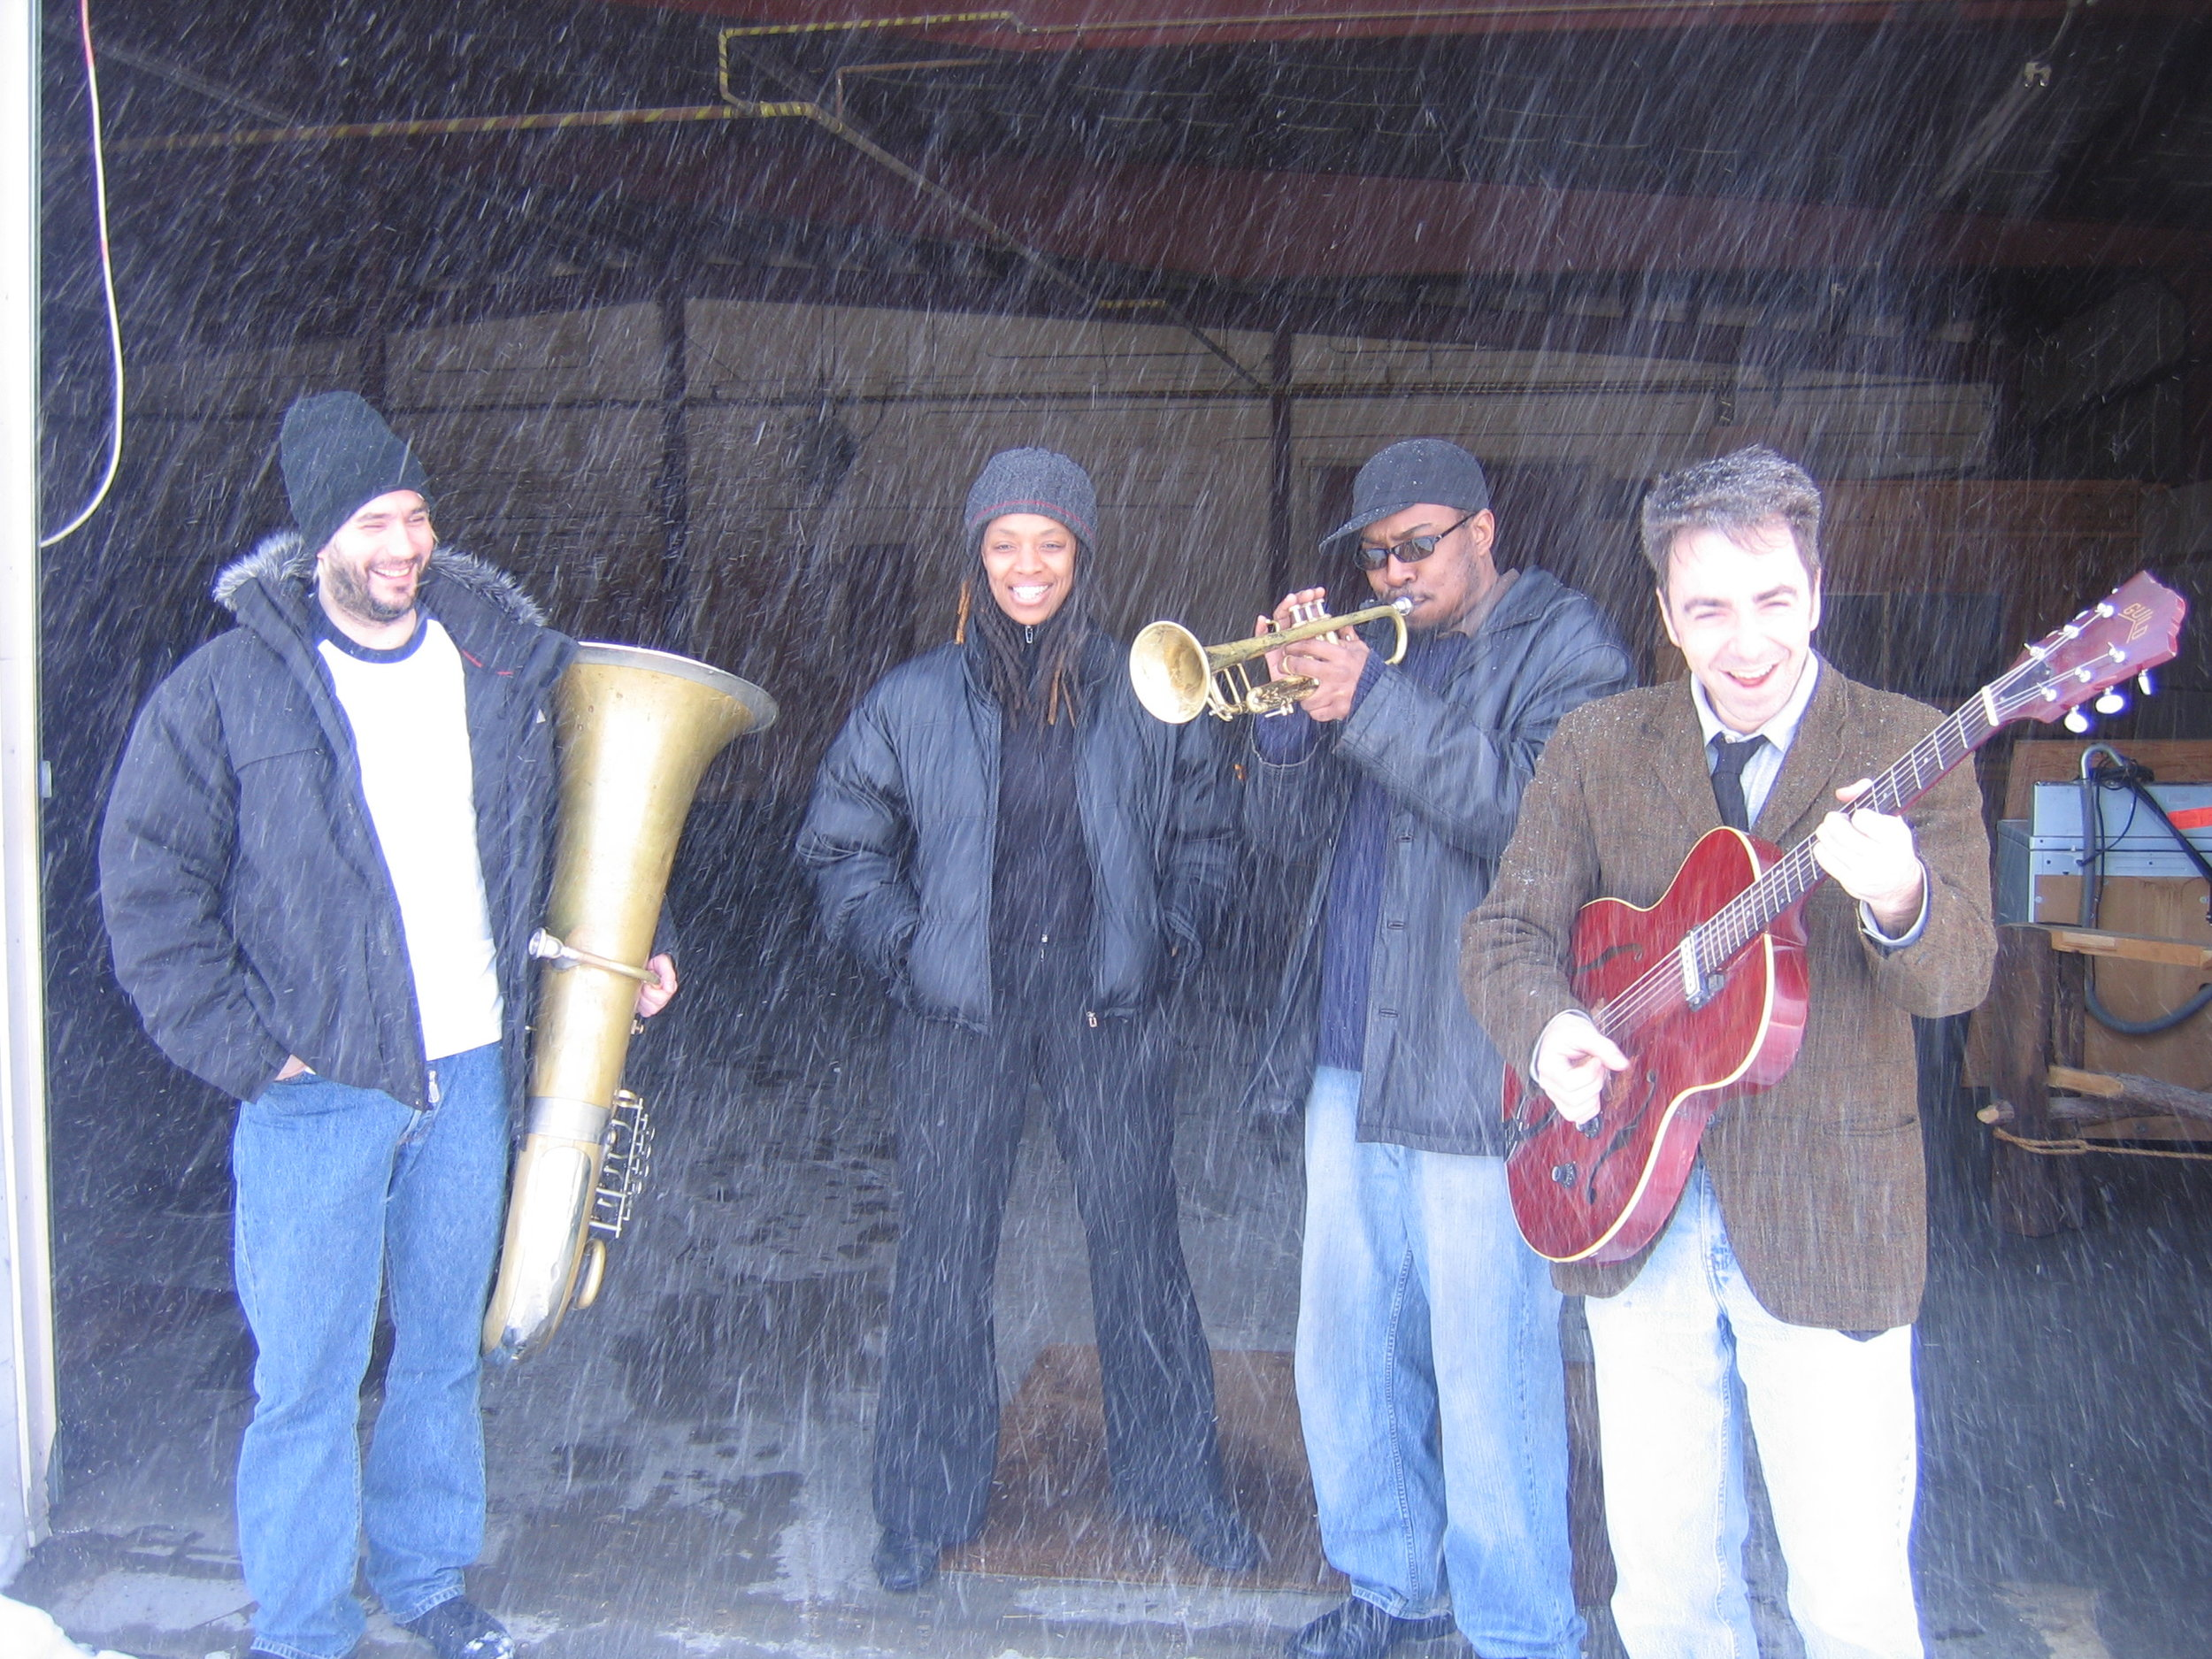 With (L to R) Ron Caswell, Mazz Swift, Kevin Louis at The Vermont Arts Exchange. Photo by Matthew Perry